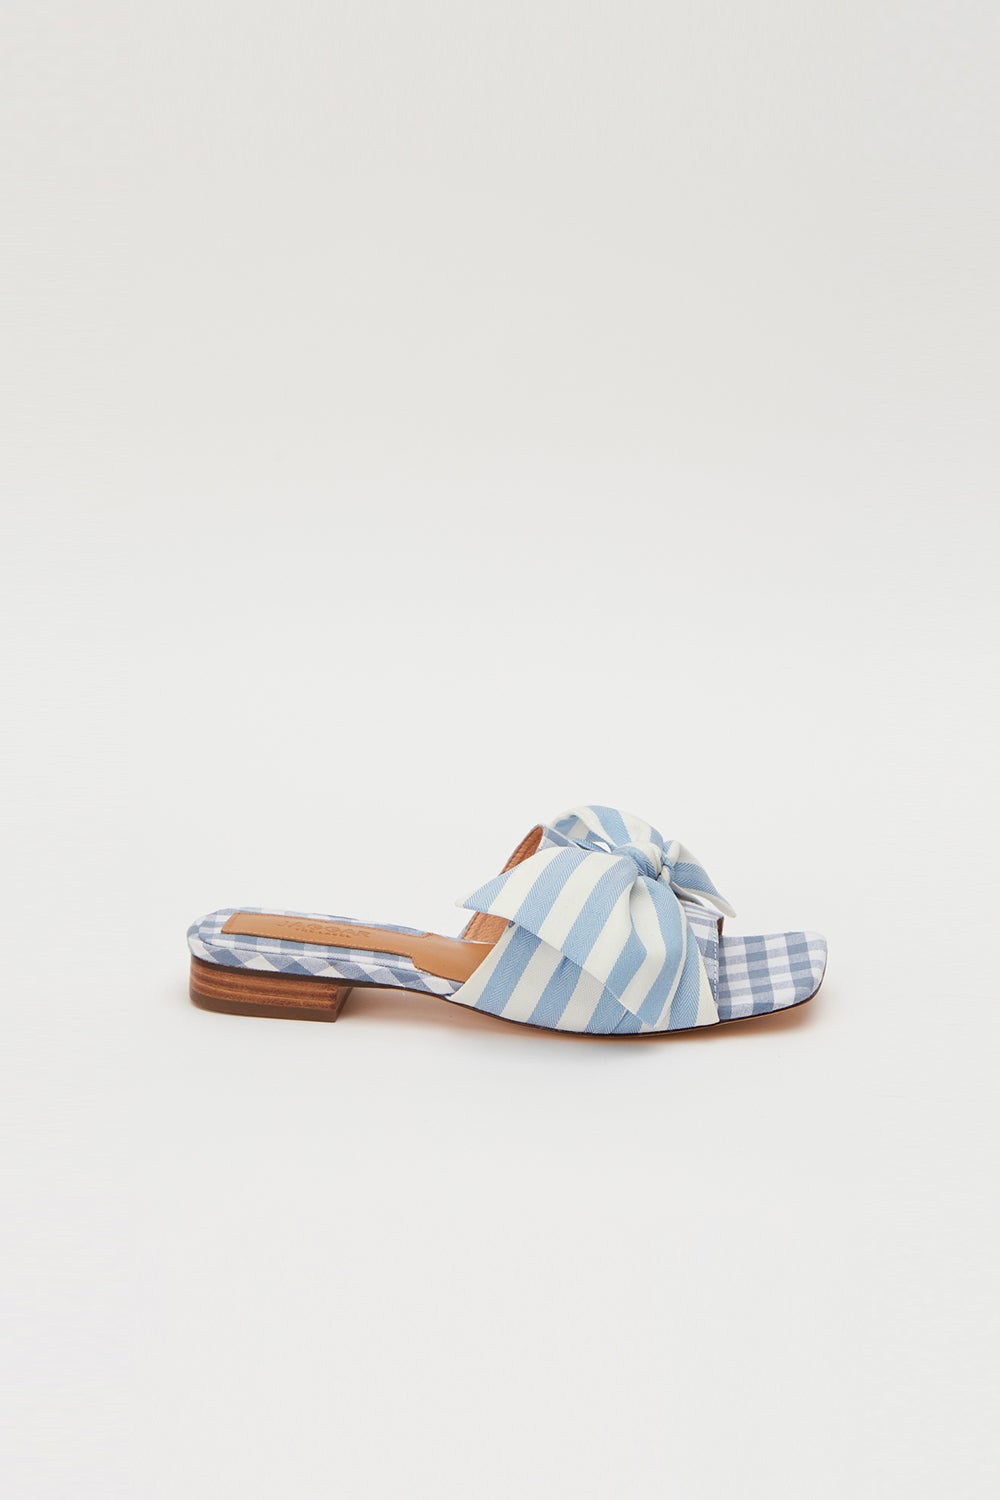 Jaggar Bow Stripe Flat Blue with White